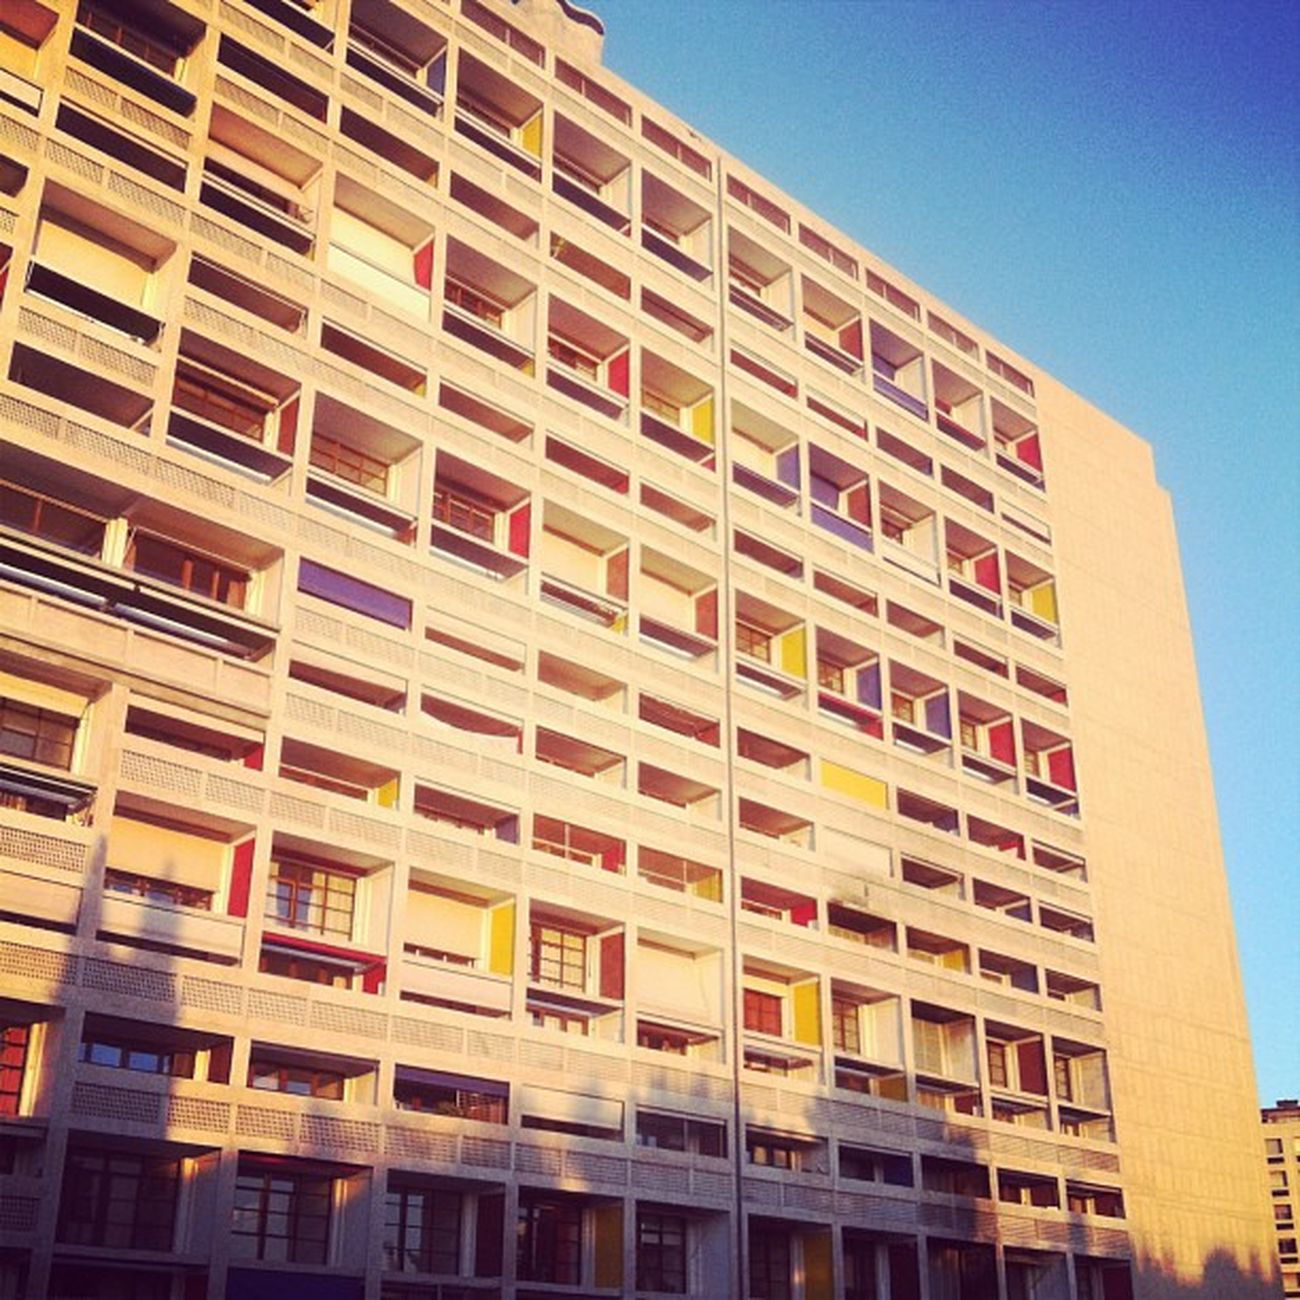 La Cité Radieuse by Le Corbusier, a residential building by one of the most important architects of the 20th century